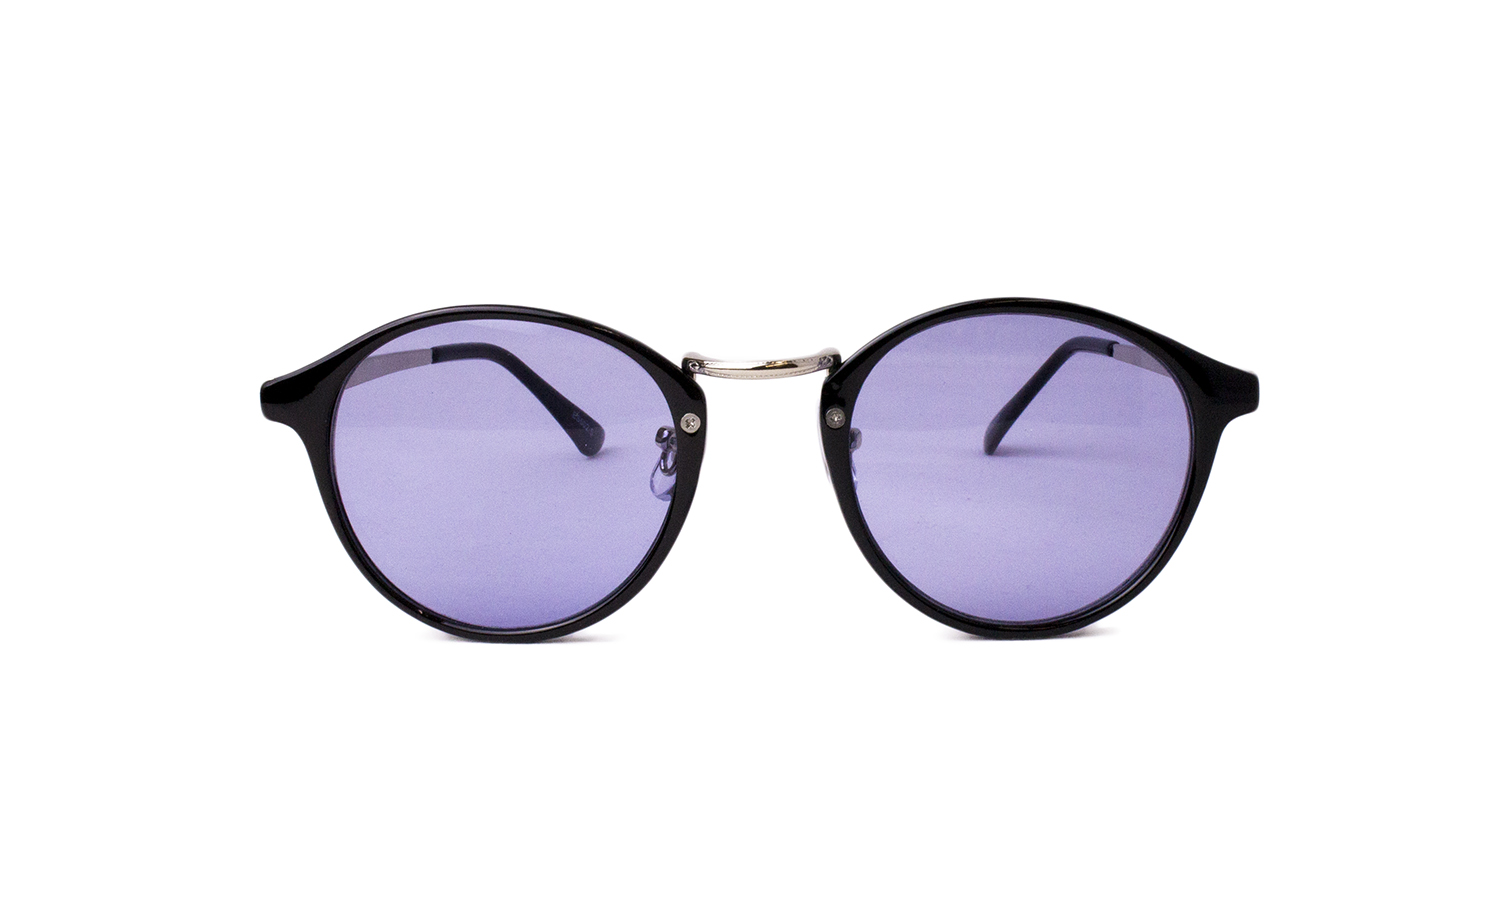 ES602-5(Frame:Black/Lens:Light Purple)